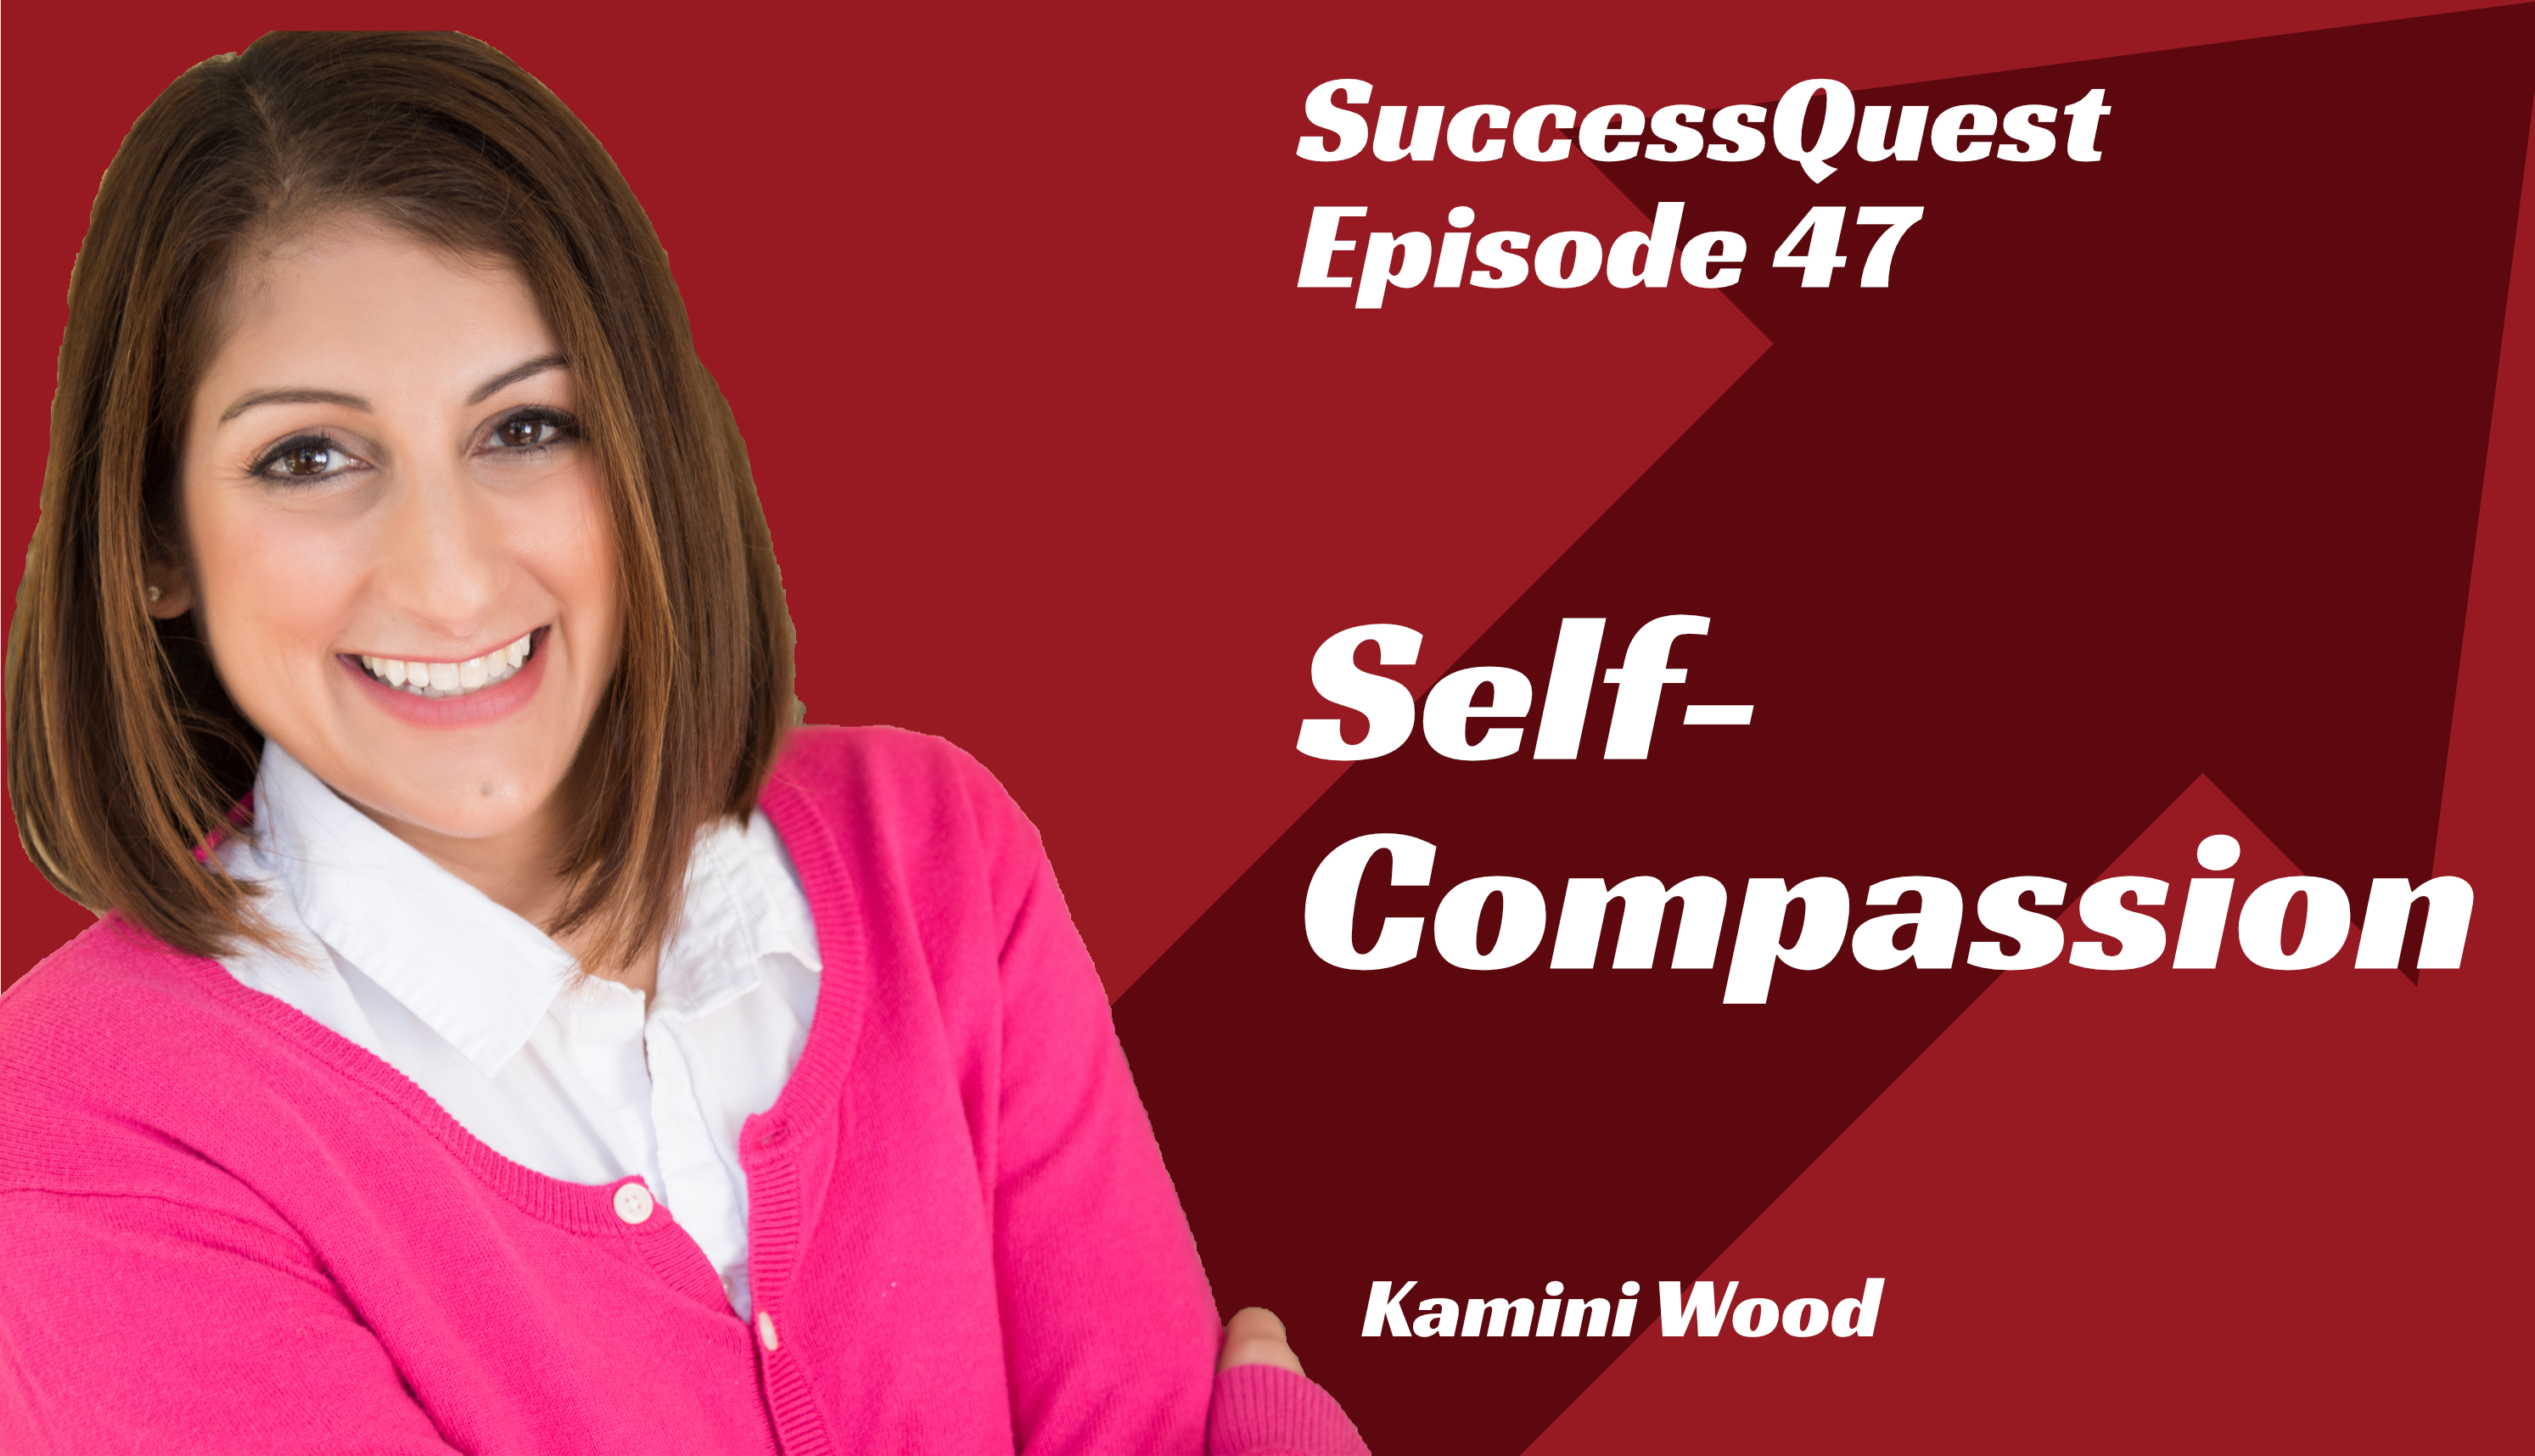 Self-Compassion Kamini Wood SuccessQuest